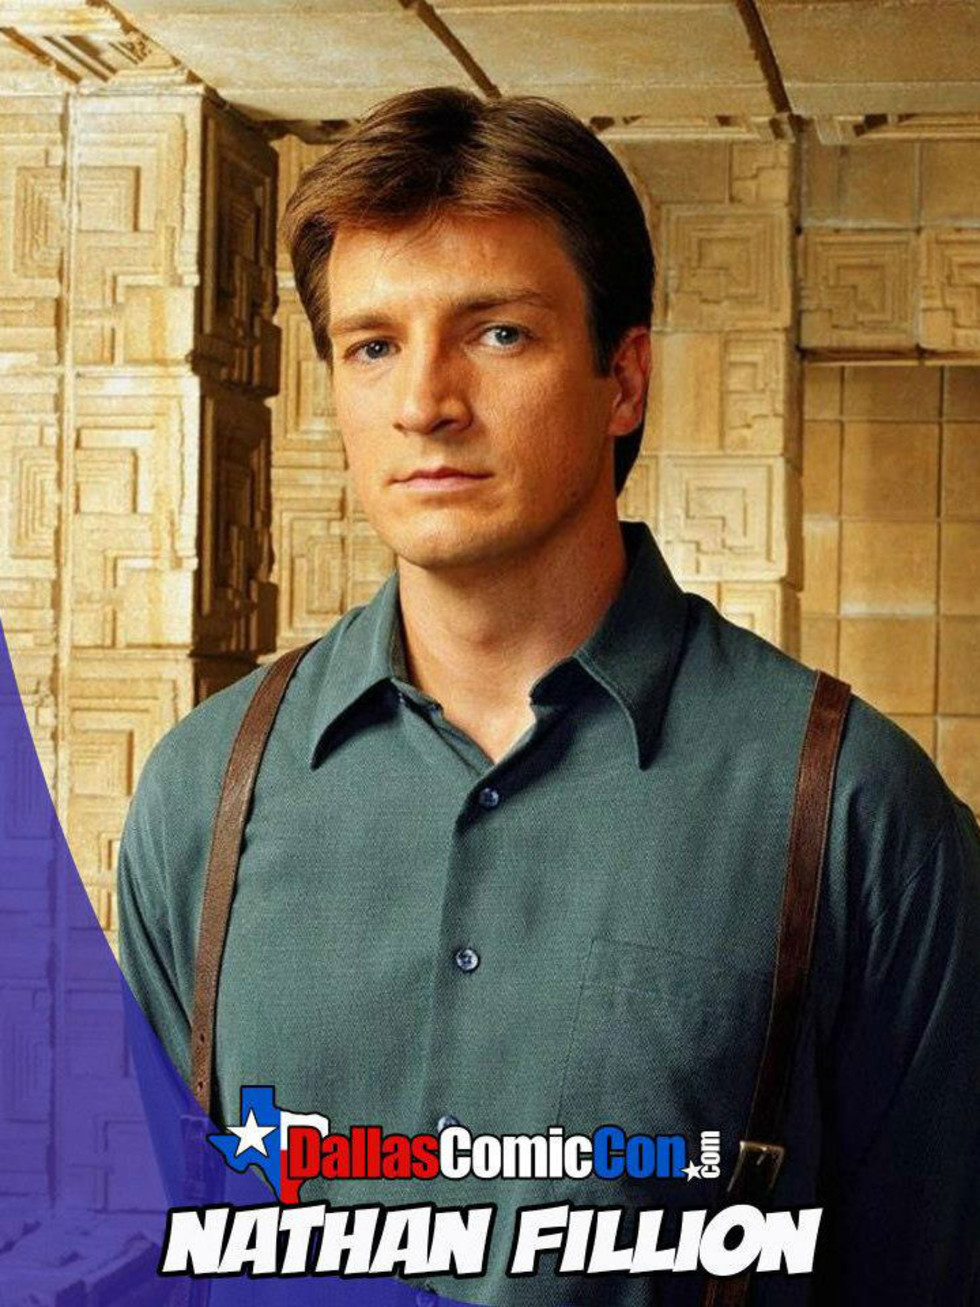 Dallas Comic Con welcomes Nathan Fillion